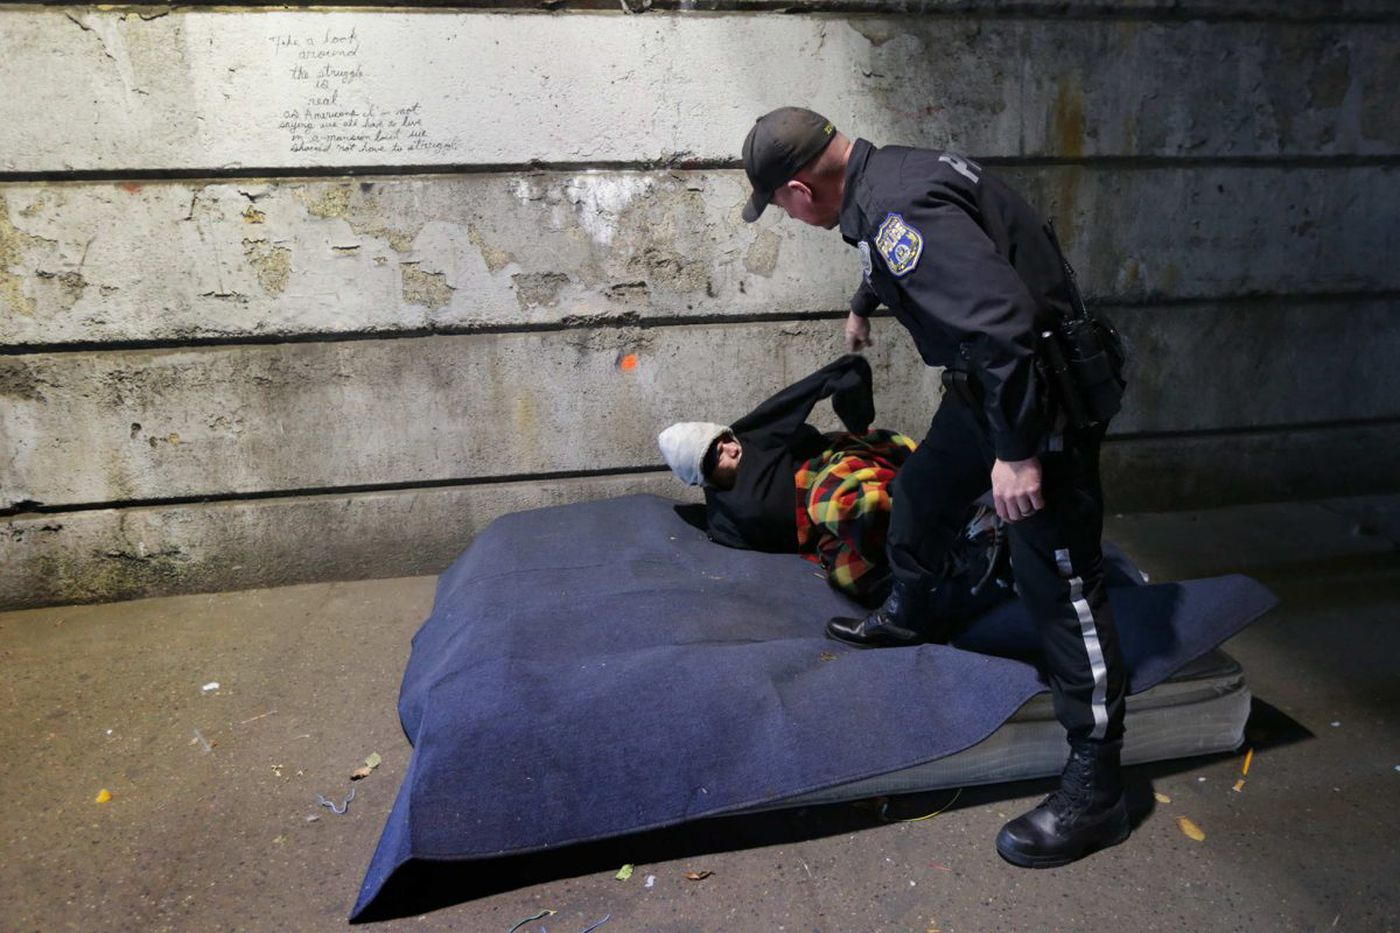 Months after the city sweep, heroin camps now scattered across Kensington | Mike Newall